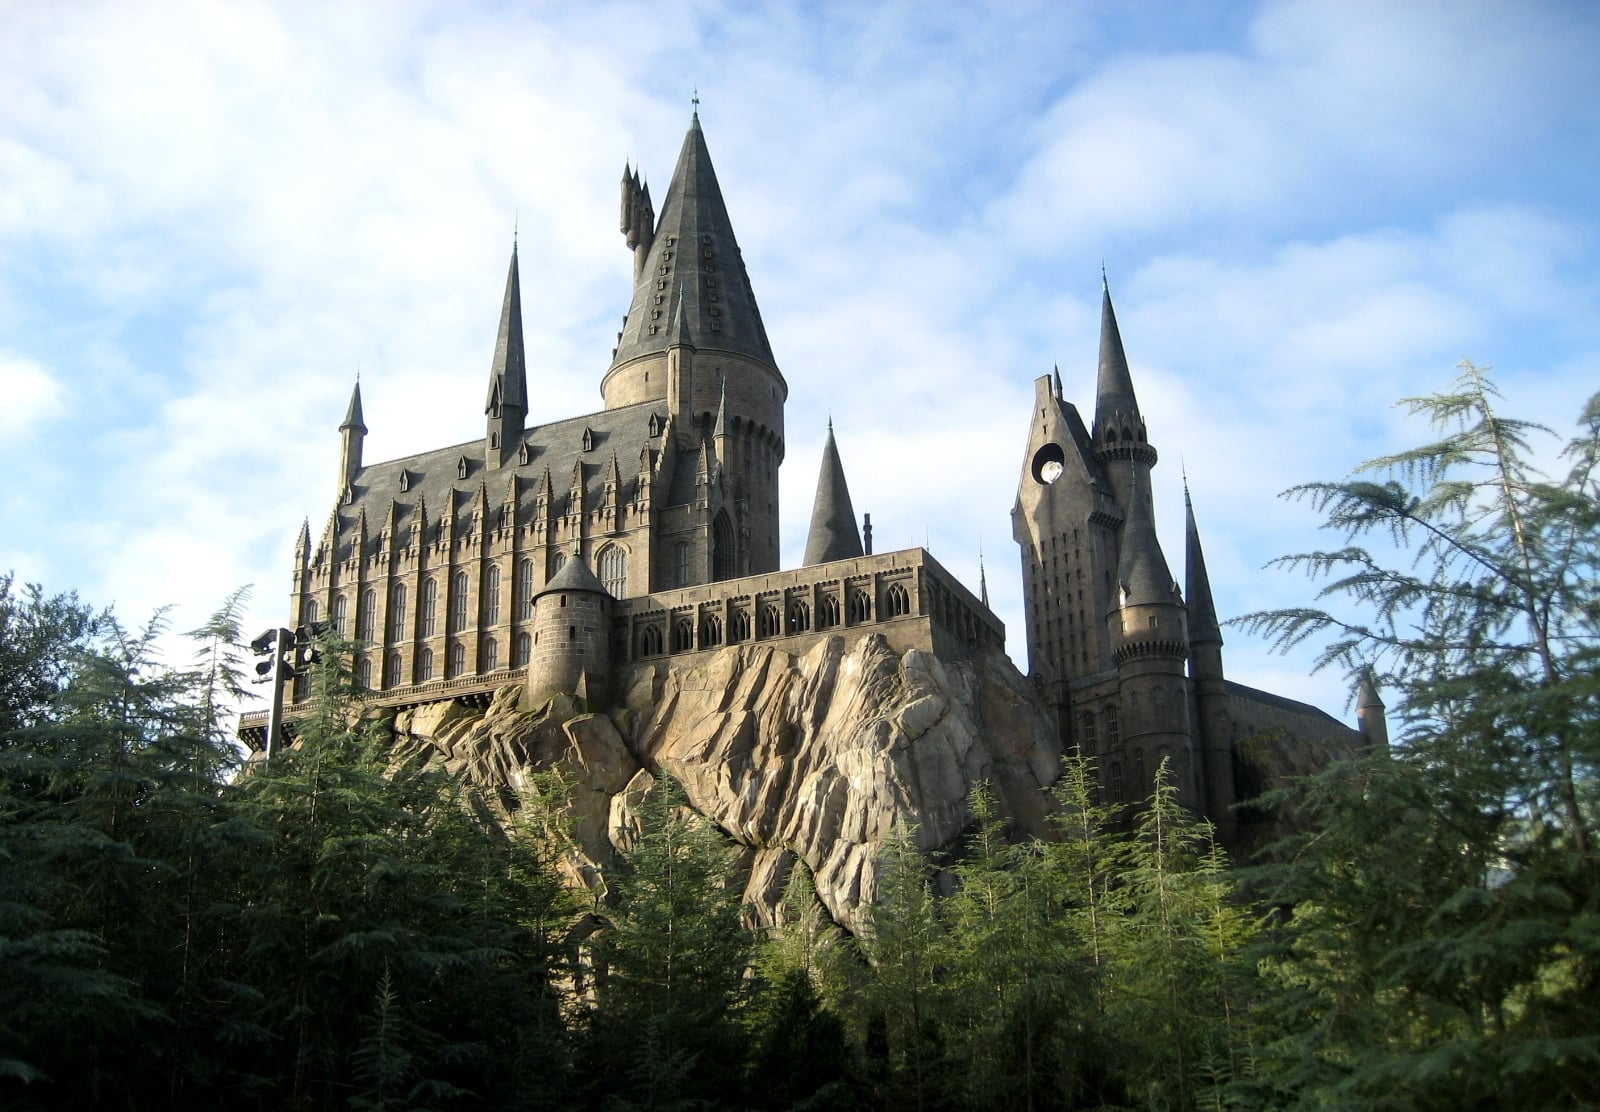 PopsugarCultureJk RowlingJ.K. Rowling Says We All Went to Hogwarts TogetherJ.K. Rowling's Latest Message About Hogwarts Will Reduce You to Tears June 24, 2015 by Brinton Parker1.3K Shares Chat with us on Facebook Messenger. Learn what's trending across POPSUGAR.Source: Flickr user zhaoangelaIf your 11th birthday came and went without any sign of an owl, you might have cried yourself to sleep that night — and you're not the only one, because that's what millions of other Harry Potter fans did. The distress that comes with not receiving a Hogwarts acceptance letter is something that every series devotee feels in one form or another, and plenty of Potterheads have taken to lamenting about it on Twitter. When author J.K. Rowling caught wind of this mass depression, though, she didn't simply tell Harry Potter readers to suck it up; she gave them an incredible gift. .@m_abs All these people saying they never got their Hogwarts letter: you got the letter. You went to Hogwarts. We were all there together.— J.K. - 웹